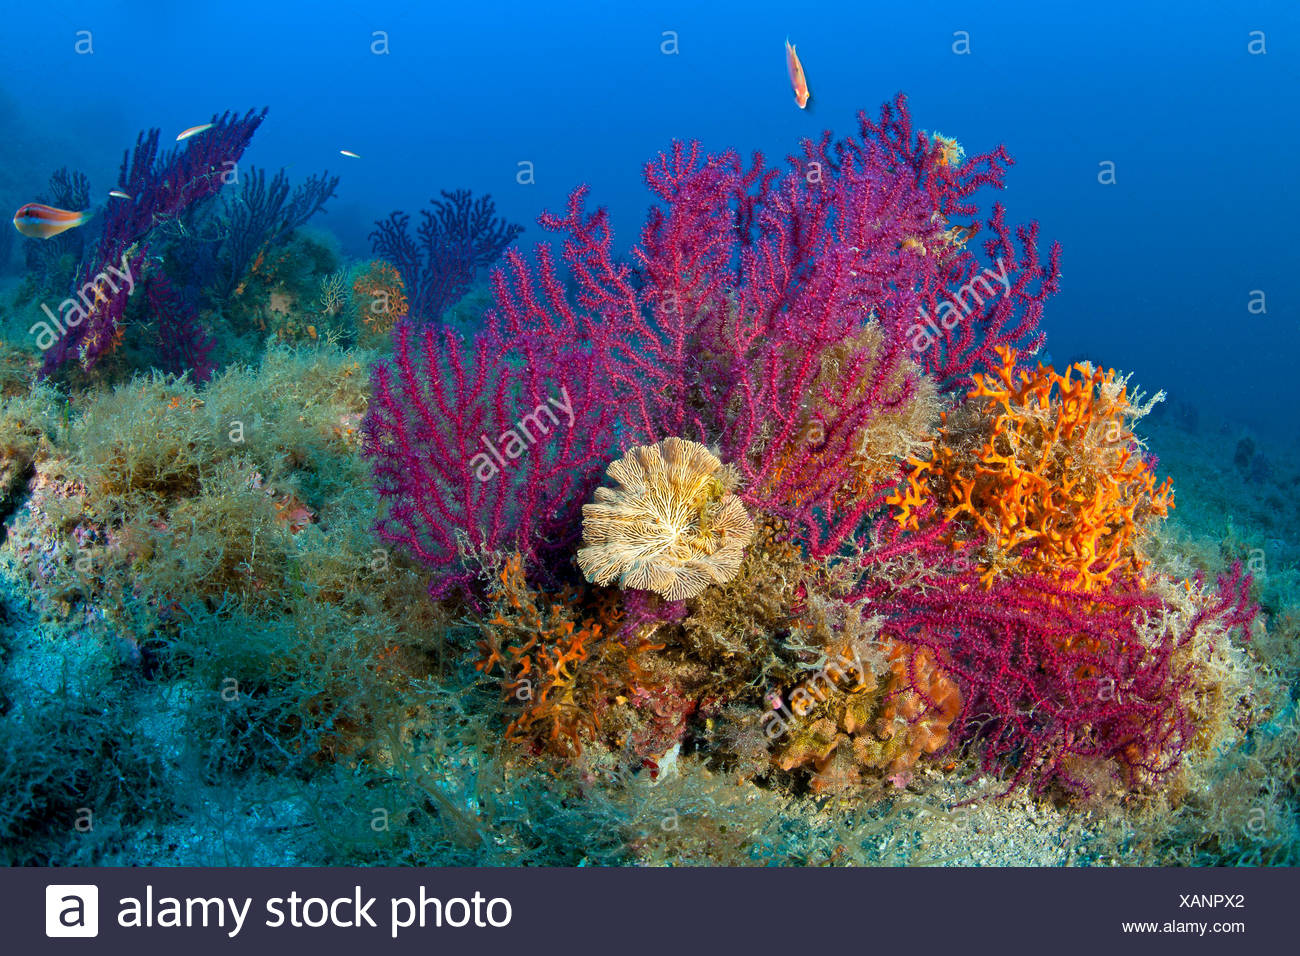 Variable Gorgonians in Coral Reef, Paramuricea clavata, Massa Lubrense, Campania, Italy Stock Photo